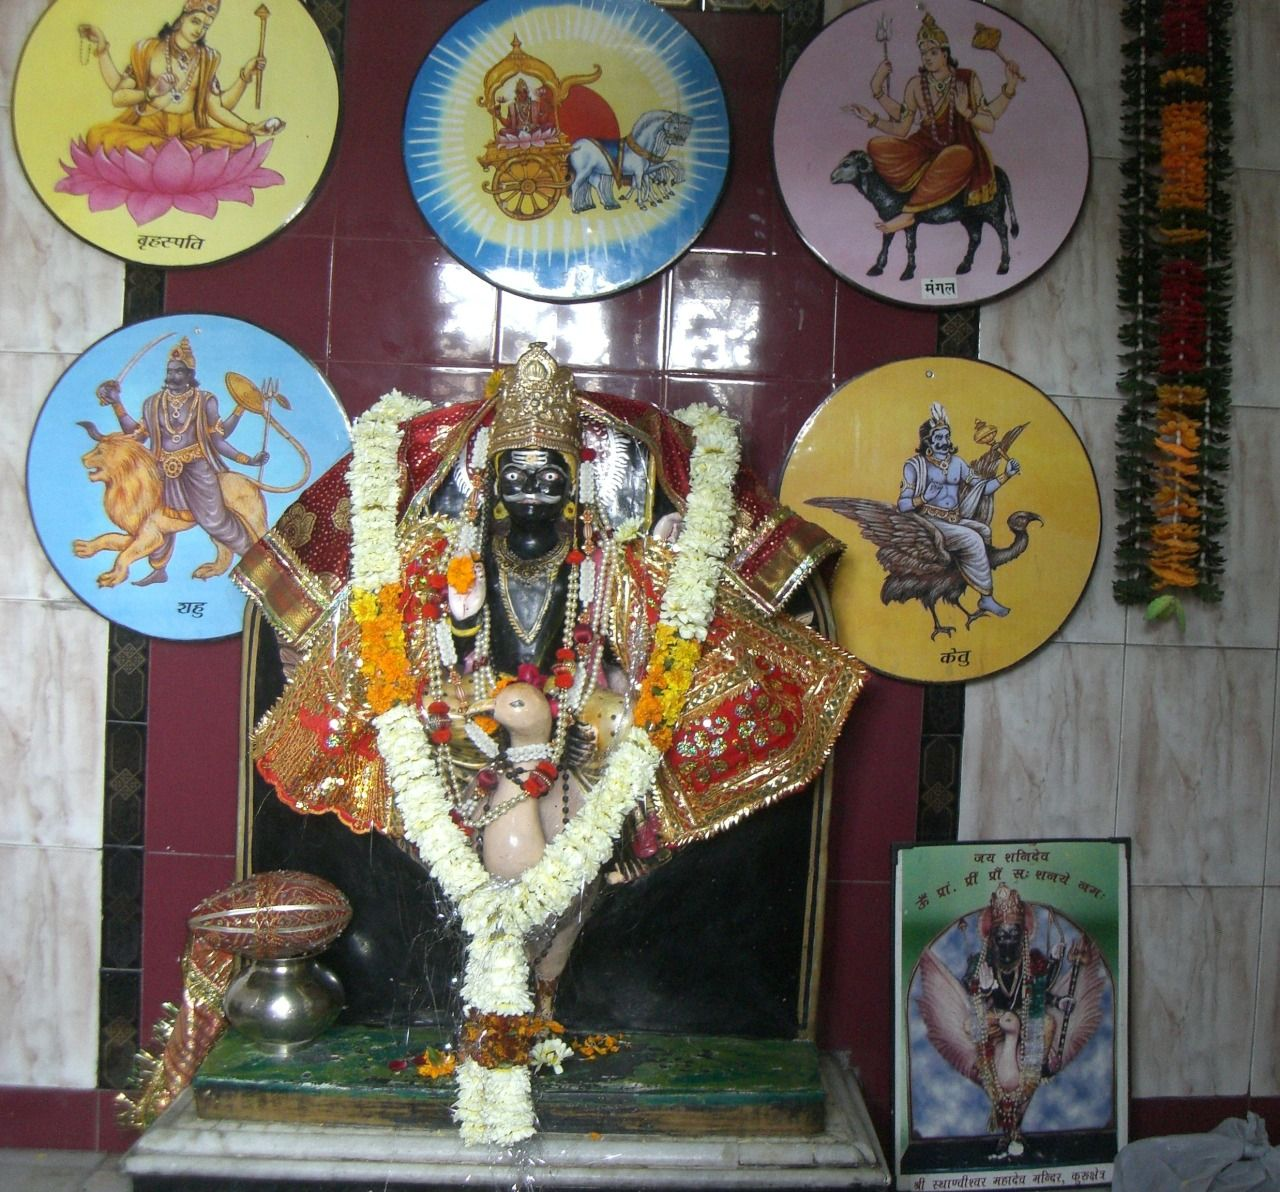 Statue of shani saturn with the paintings of the navagraha the nine planets